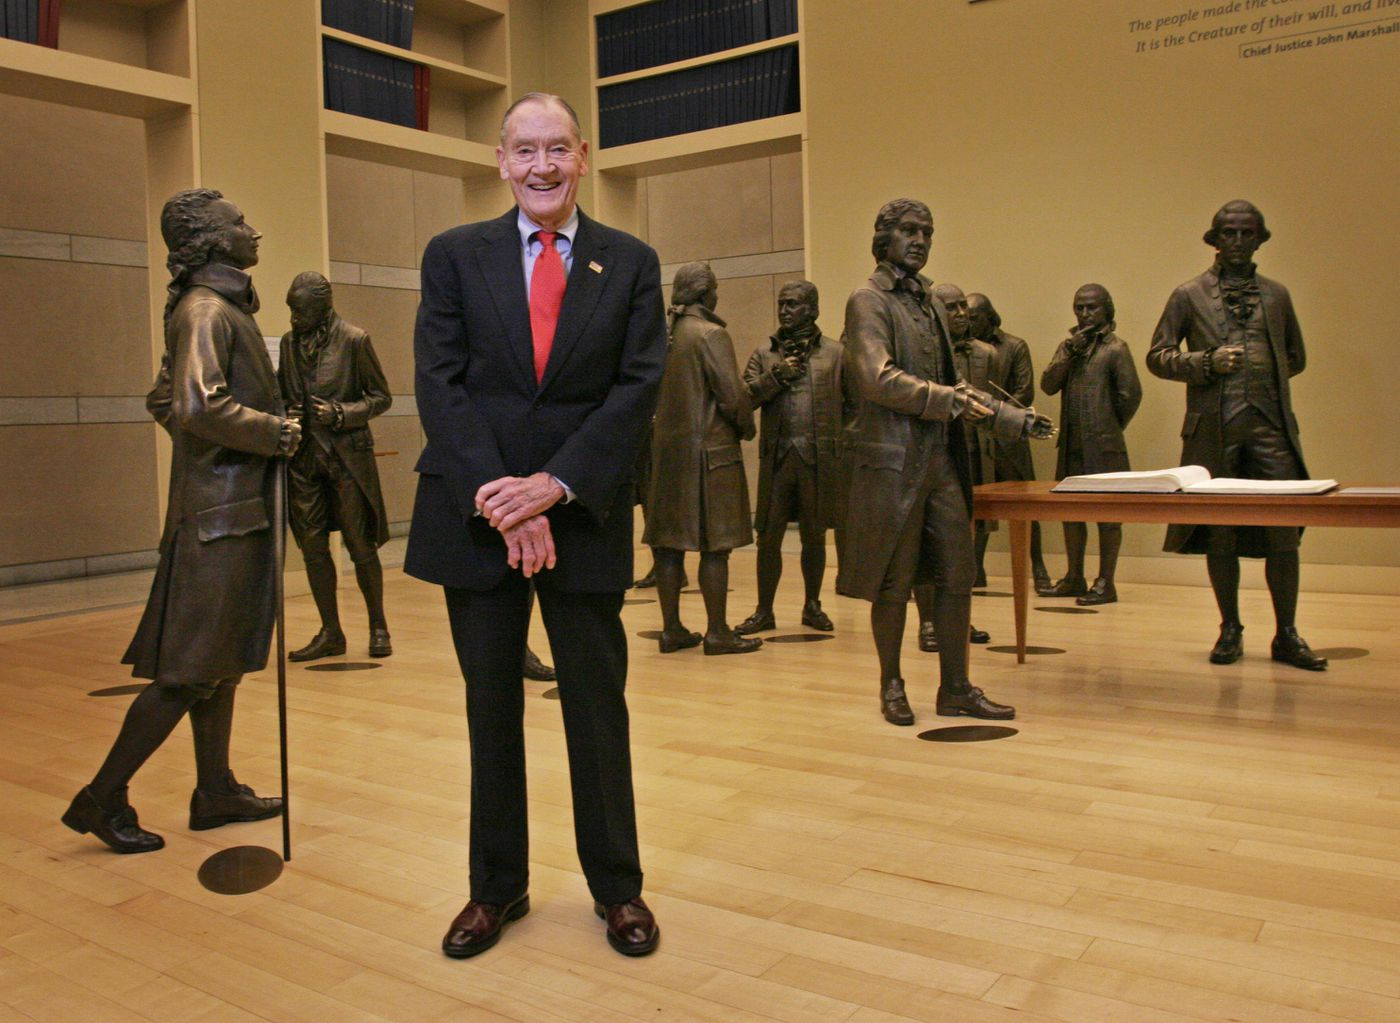 John Bogle, founder of The Vanguard Group,Inc. was Chairman of the Board of the National Constitution Center in 2006 when he stood beside one of his favorite signers, Alexander Hamilton, far left.